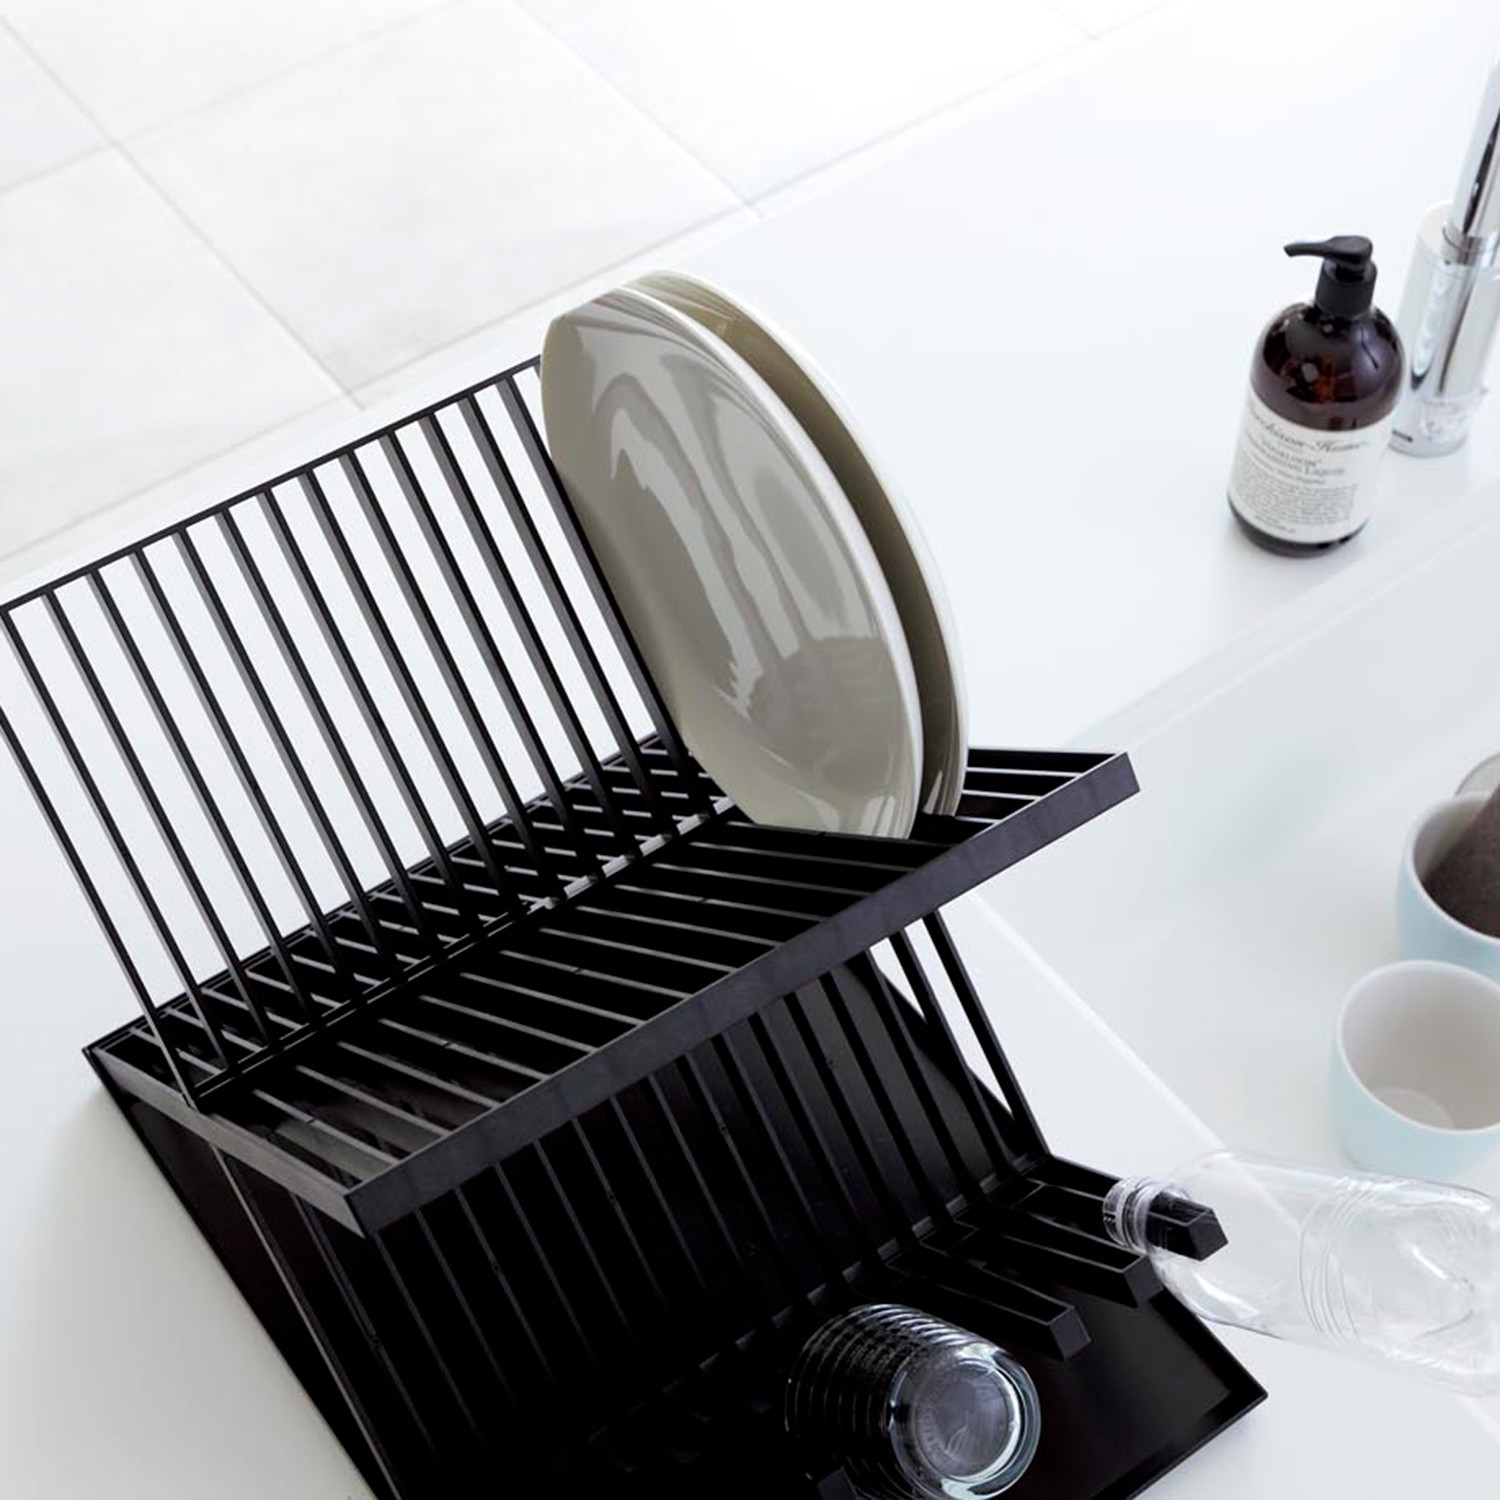 Tower // Dish Rack (Black) & Tower // Dish Rack (Black) - Yamazaki USA - Touch of Modern